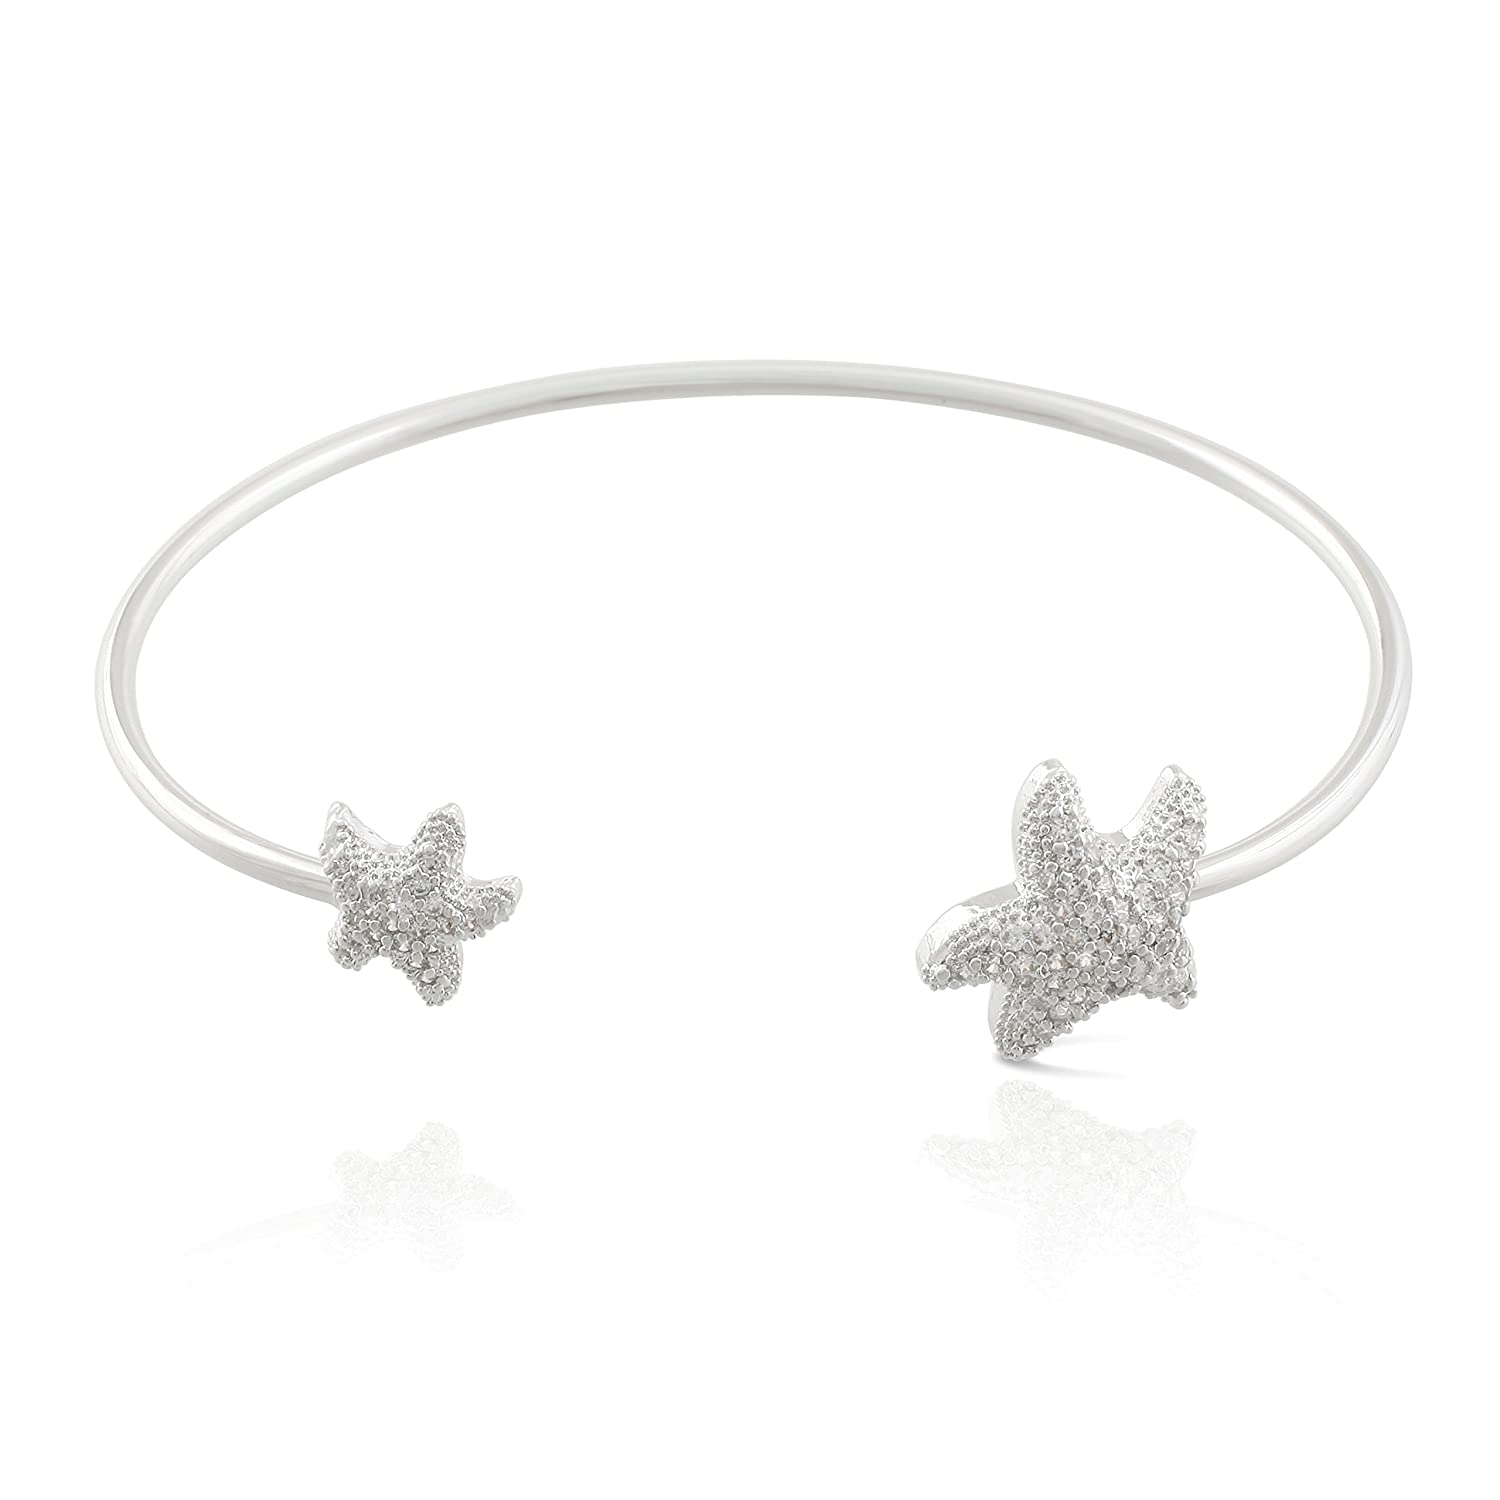 JanKuo Jewelry Silver Plated Cubic Zirconia Pave Starfish Bangle Bracelet.